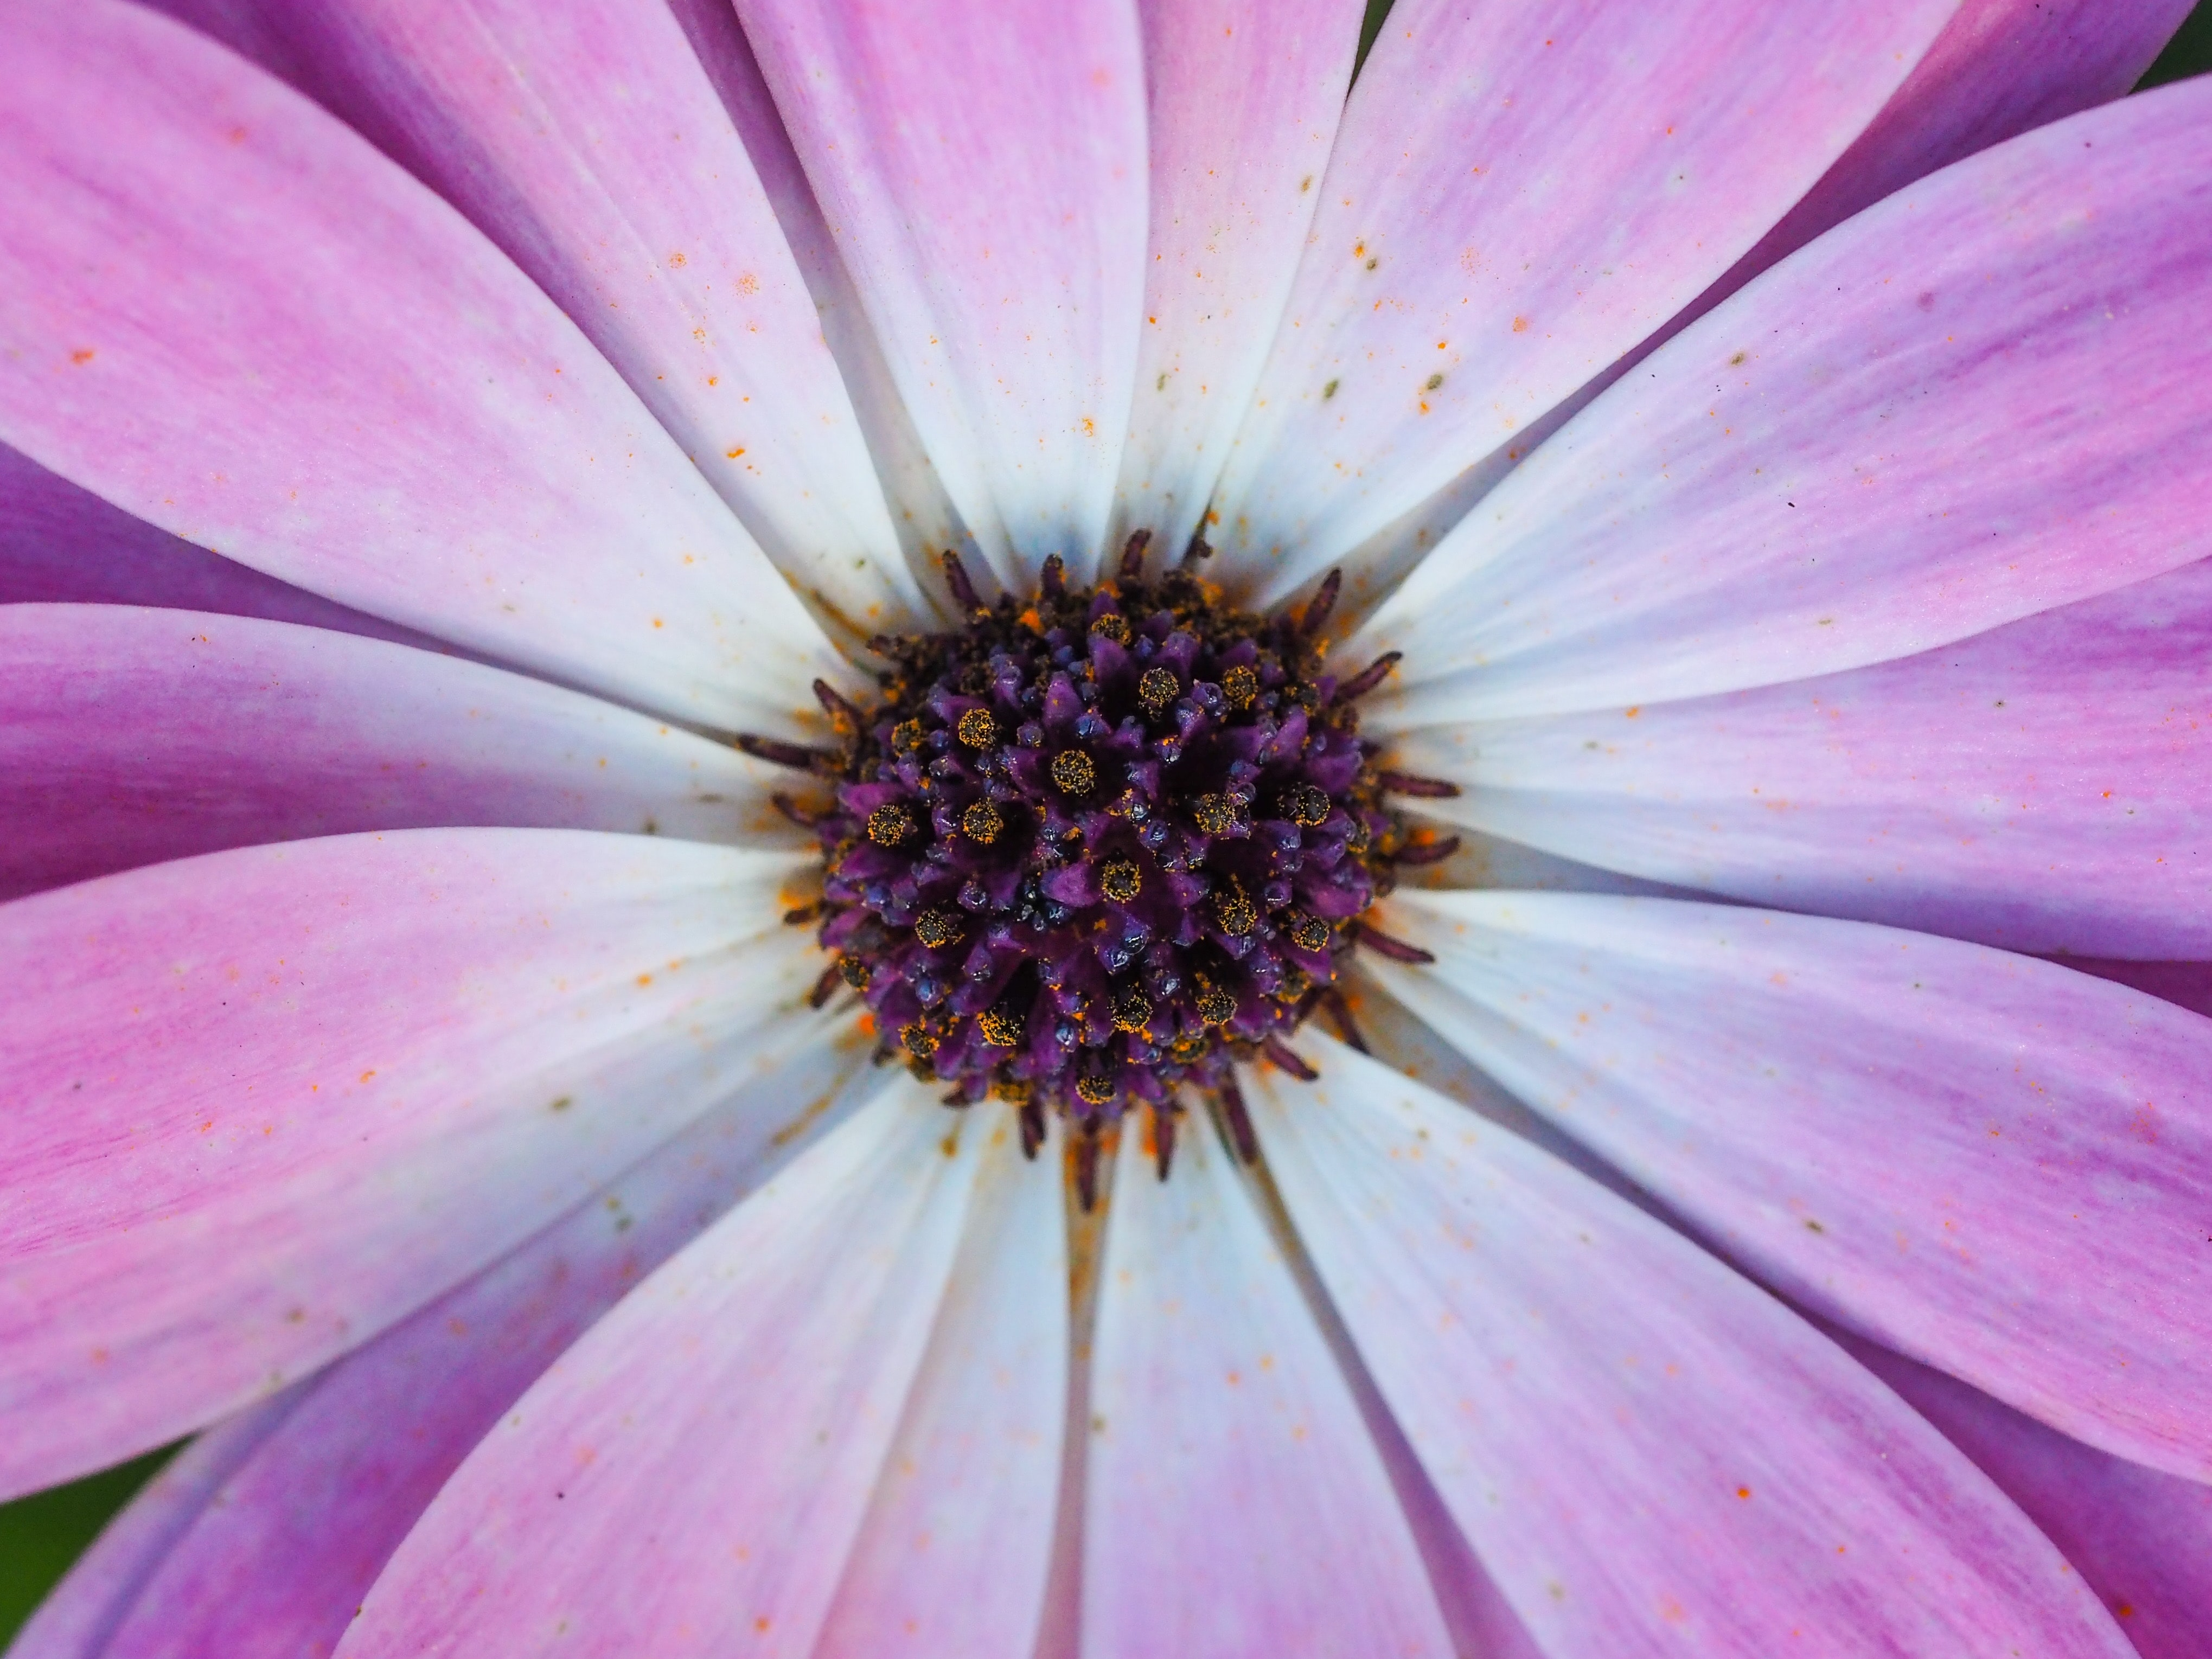 Close-up of the inside of a violet daisy flower